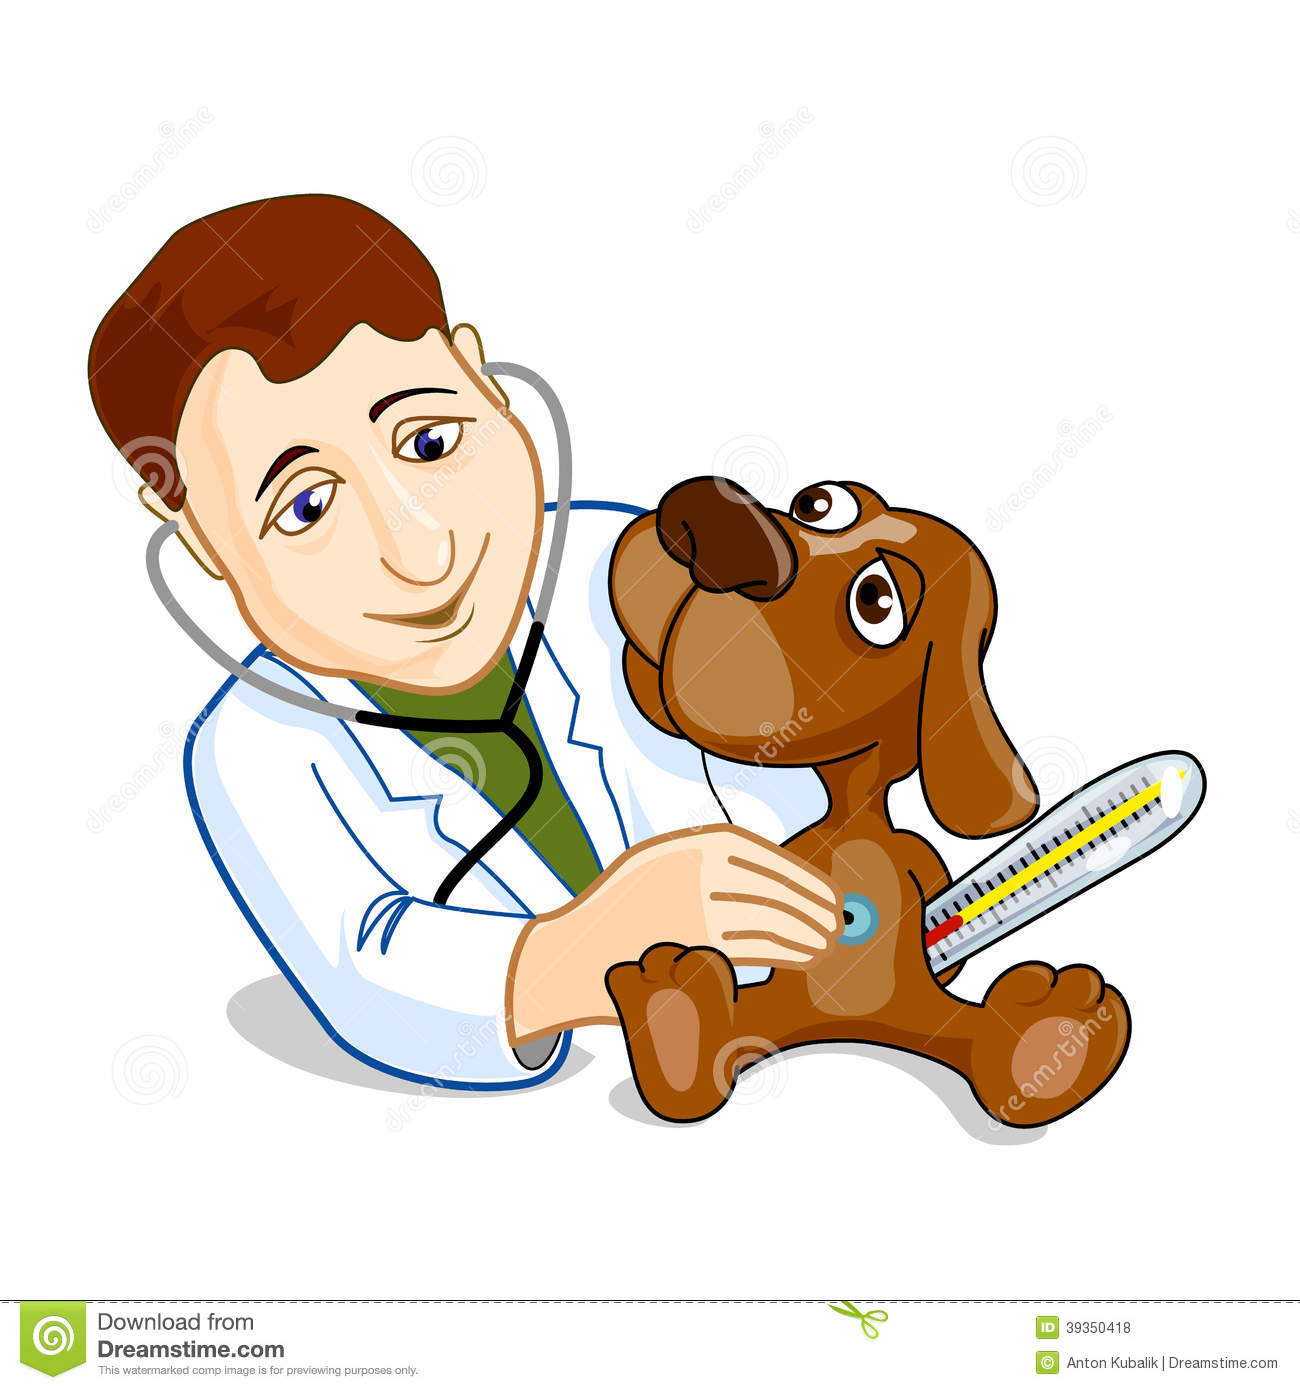 Clipart veterinarian graphic library library 5+ Veterinarian Clip Art | ClipartLook graphic library library